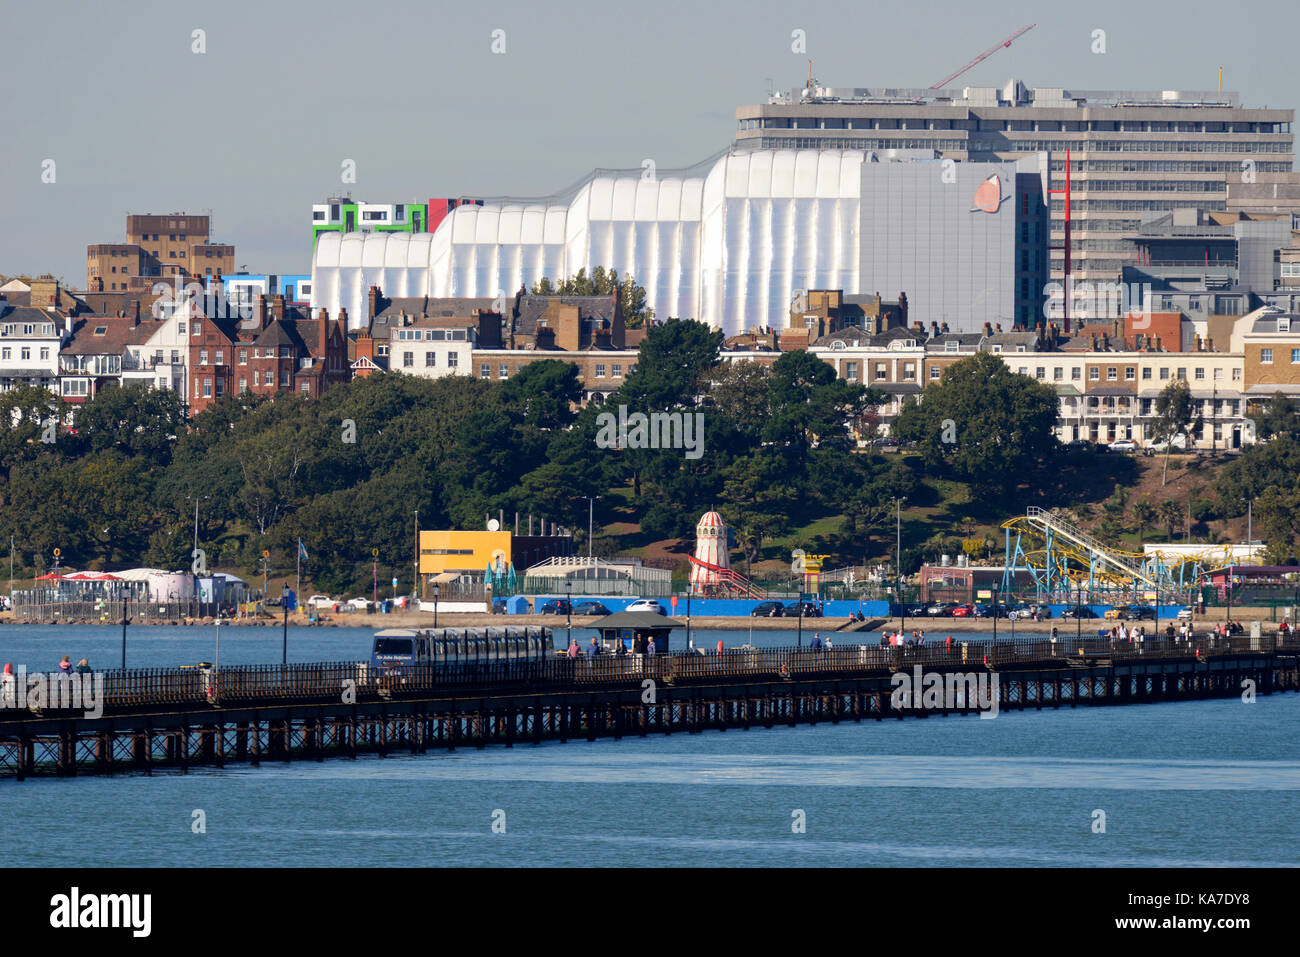 South Essex College of Further and Higher Education, also known as South Essex College, Southend on Sea, Essex. - Stock Image